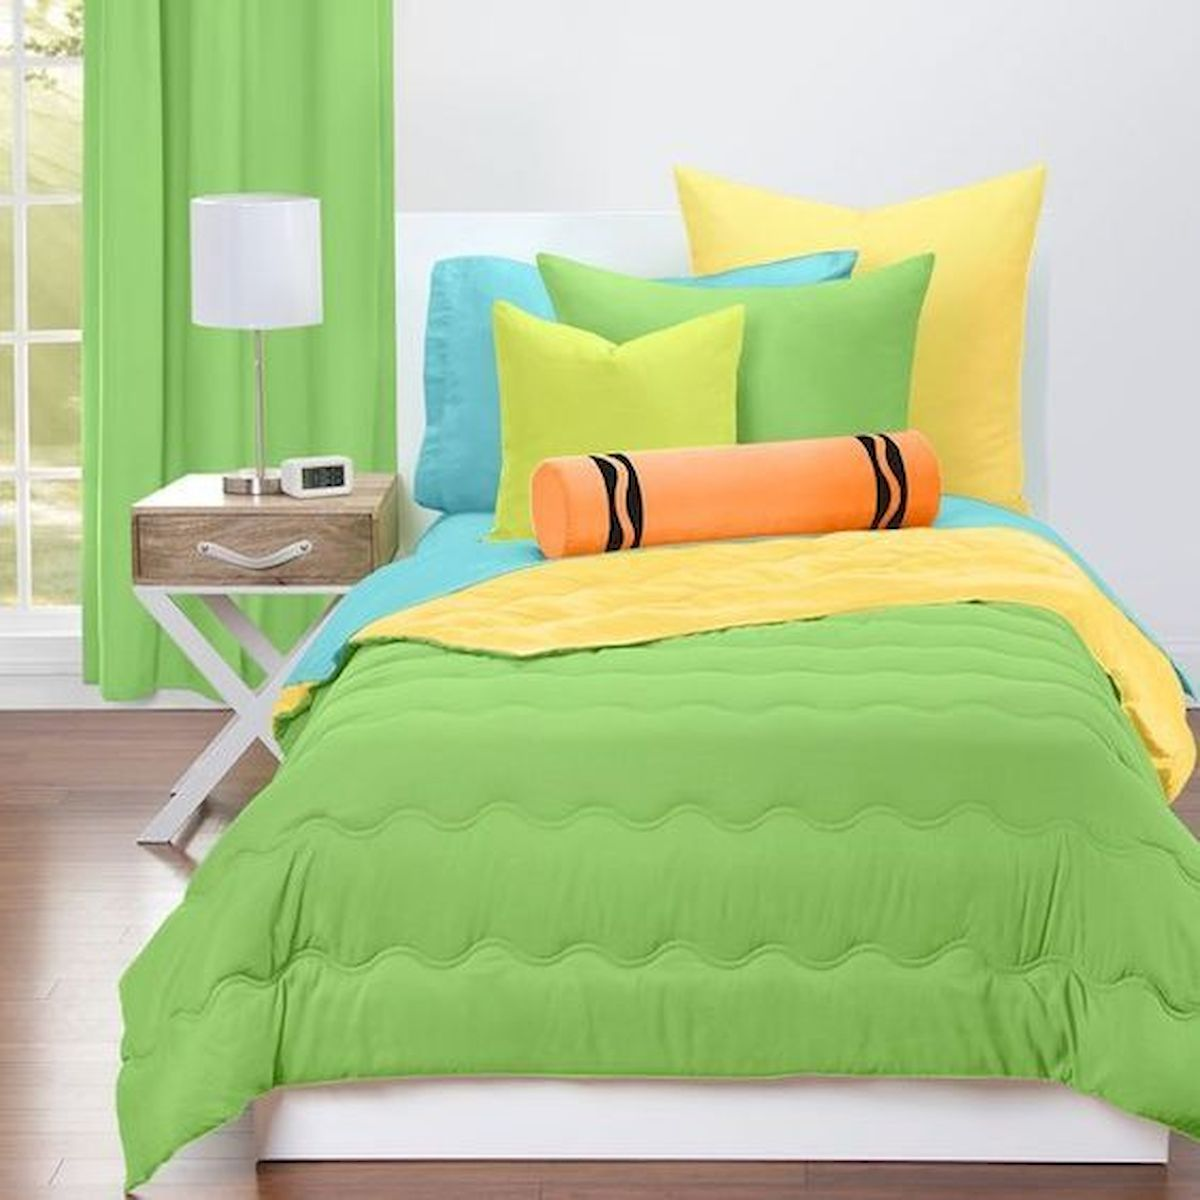 70 Awesome Colorful Bedroom Design Ideas and Remodel (15)